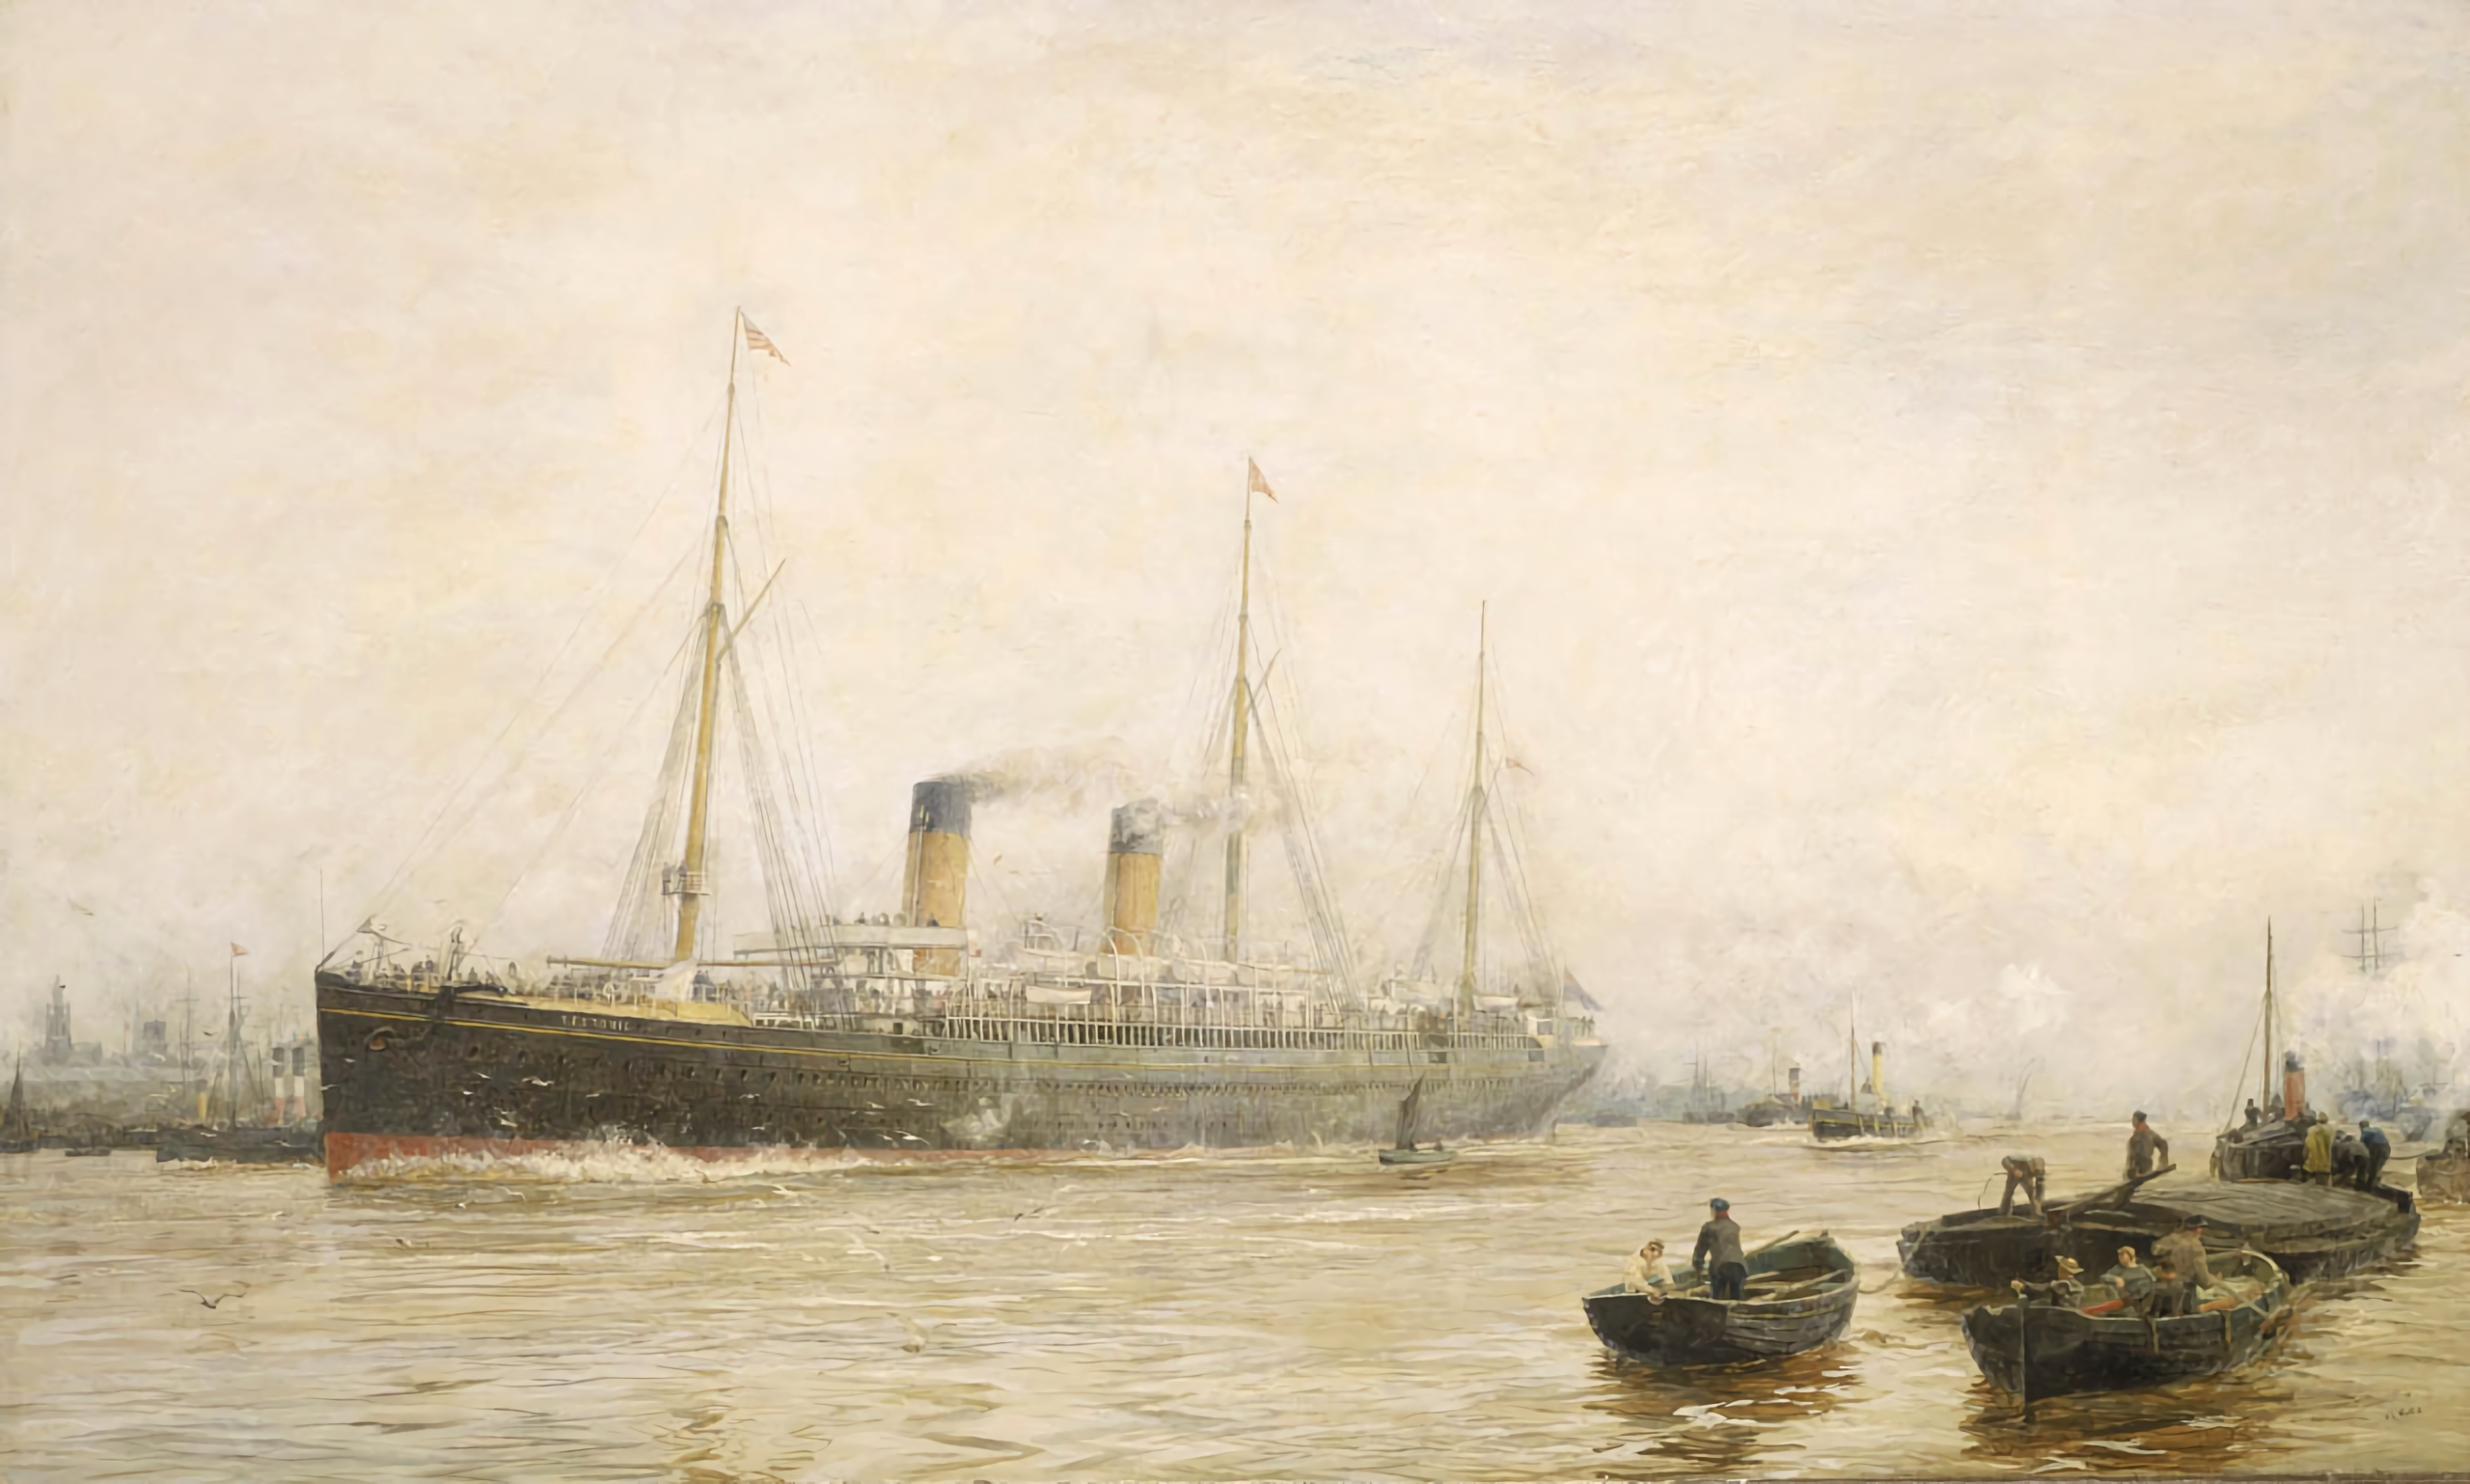 File:Teutonic leaving Liverpool.jpg